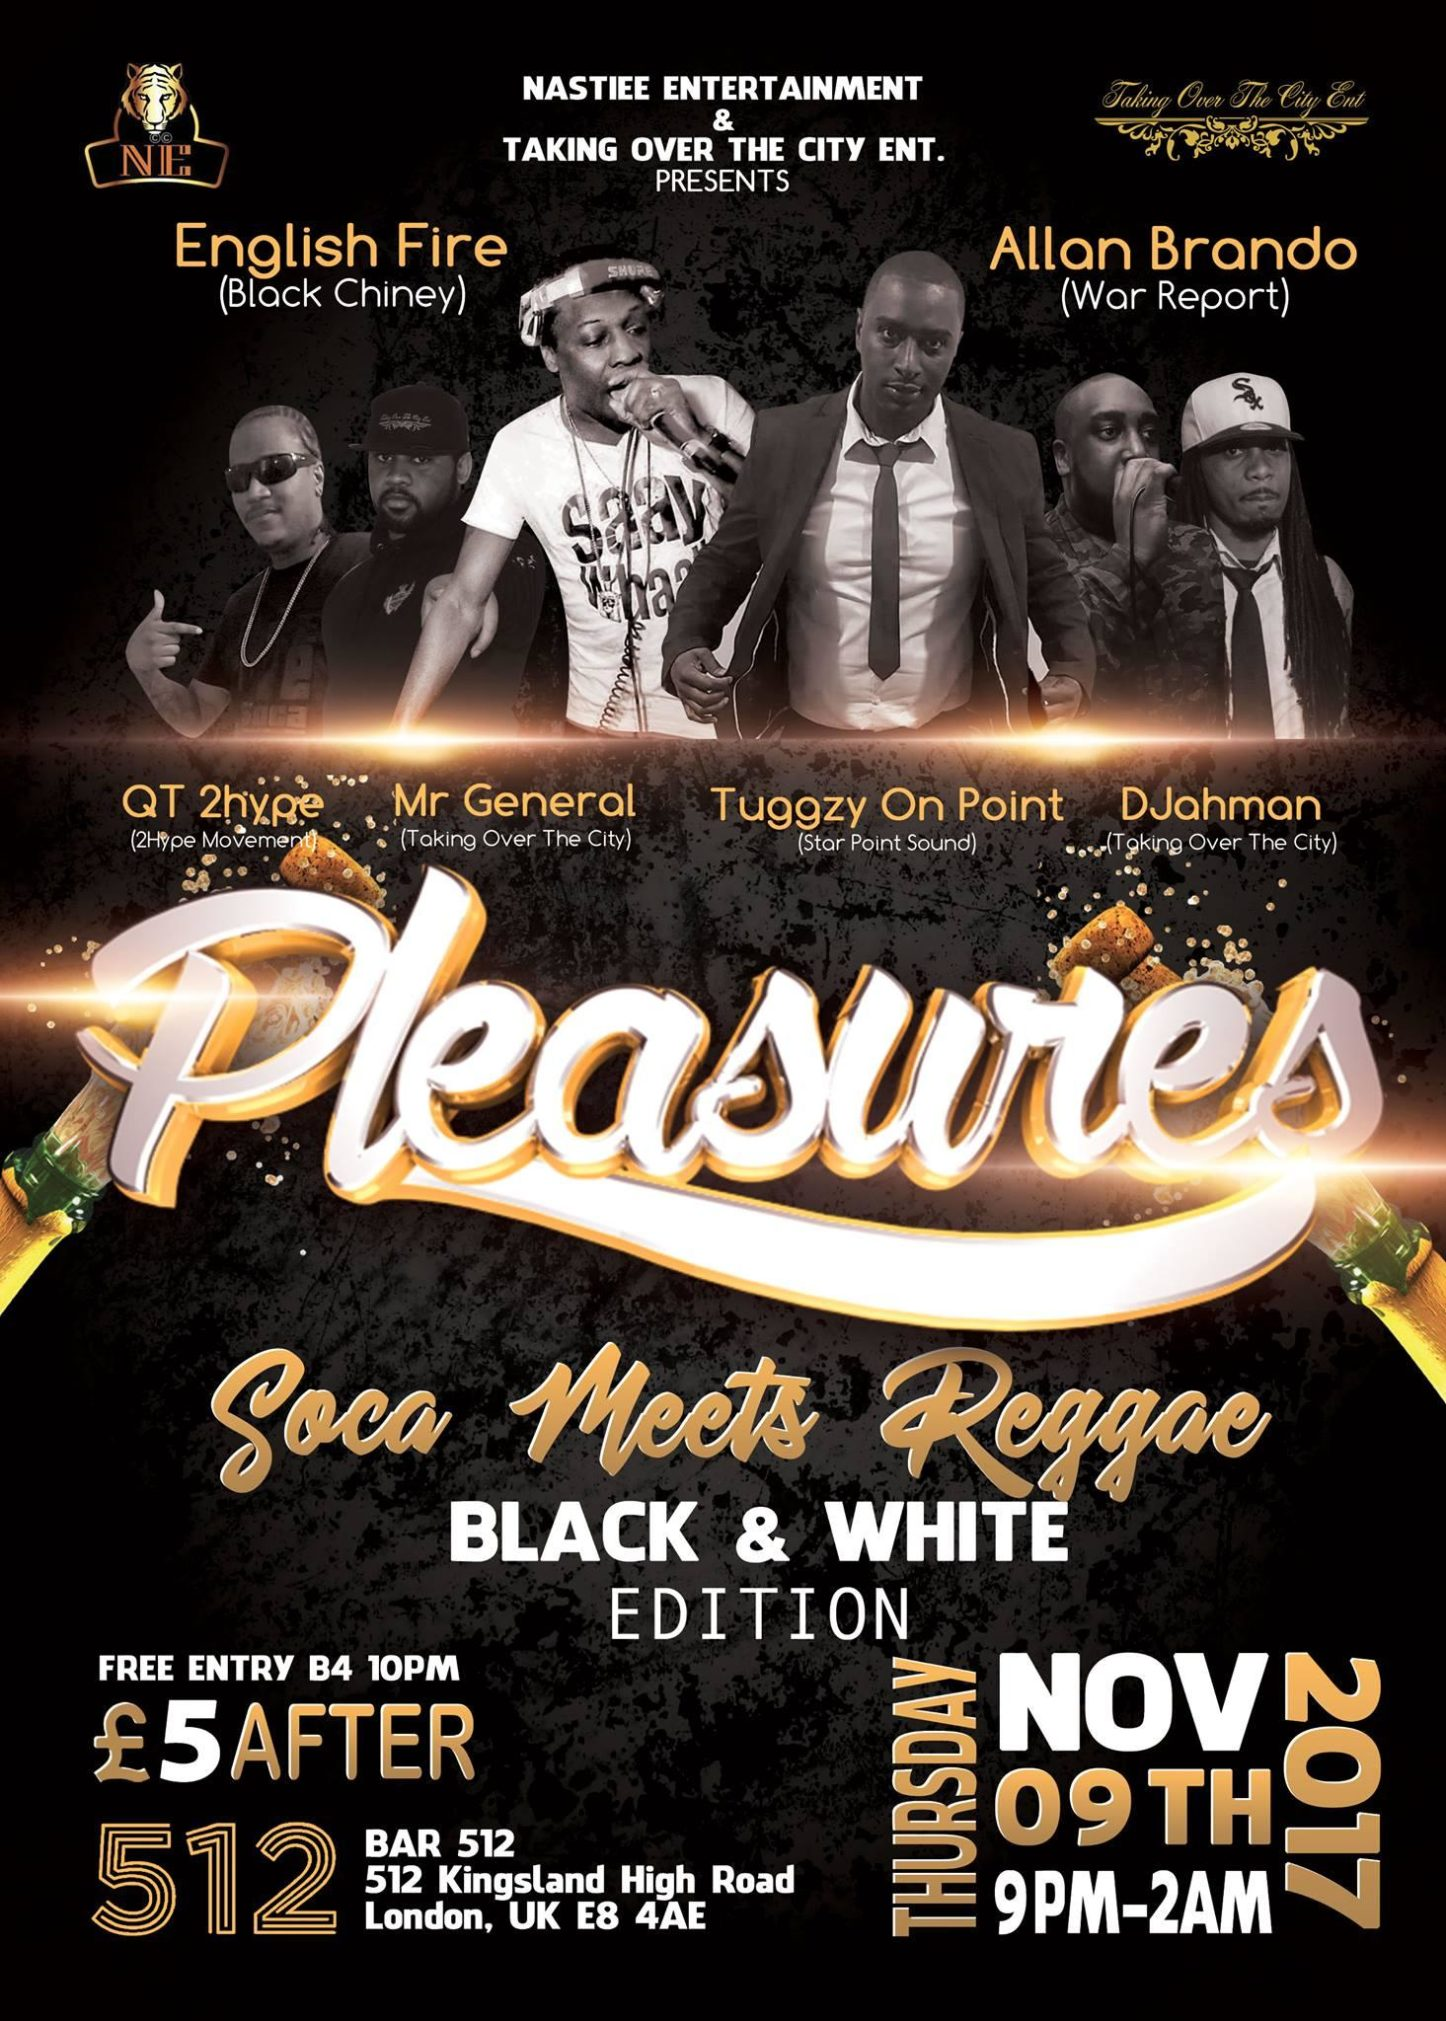 PLEASURES Soca Meets Reggae ft DJ English Fire & Allan Brando (Black & White Edition) | Blacknet UK